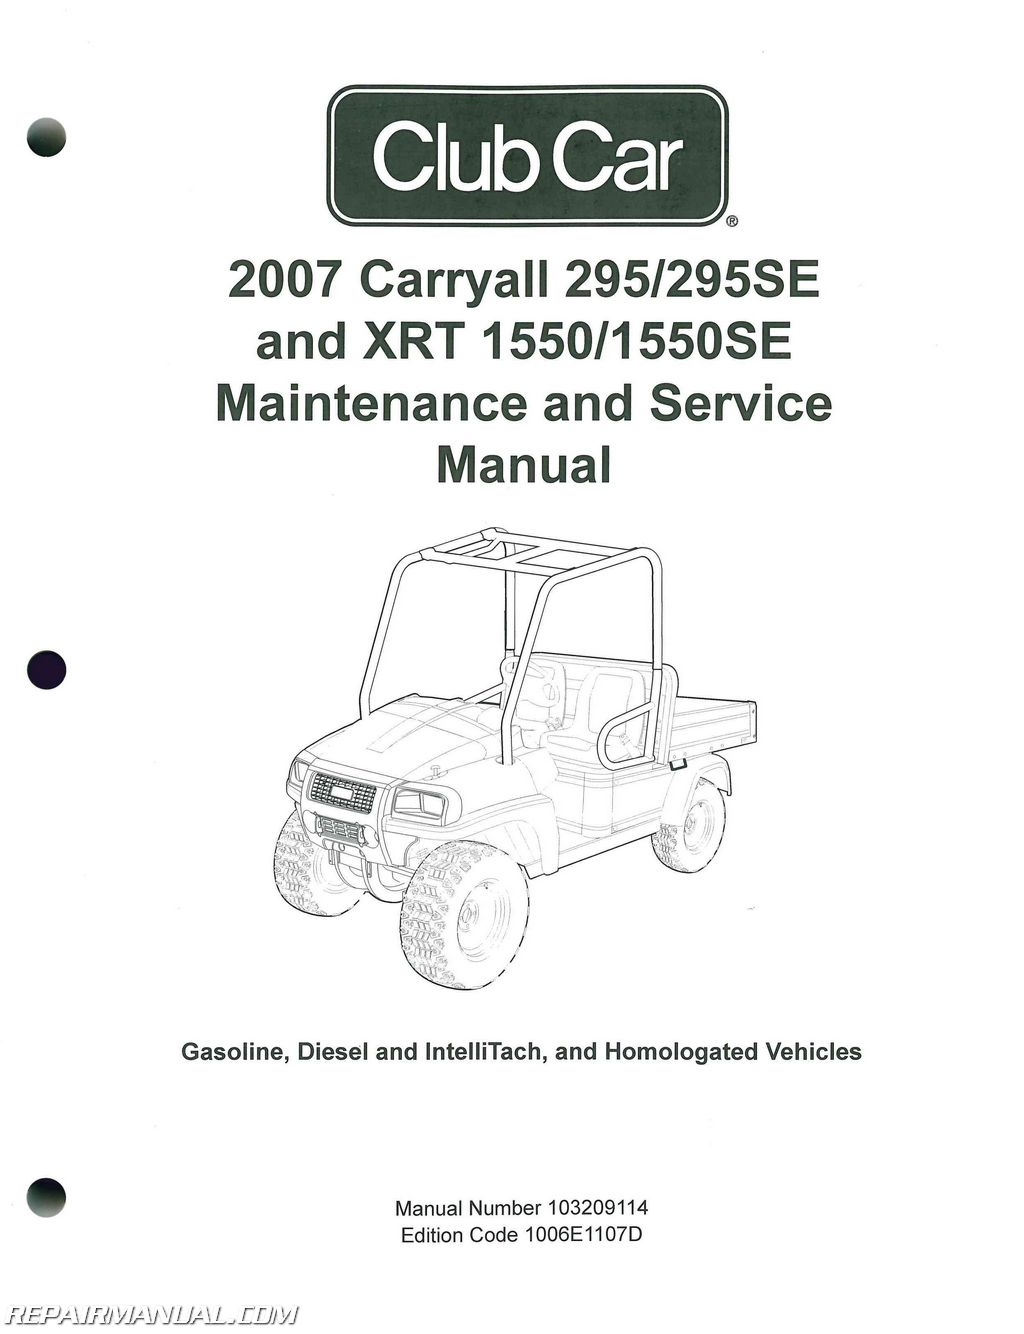 hight resolution of 2007 club car carryall service manual 295 295se u2013 xrt 15502007 club car carryall